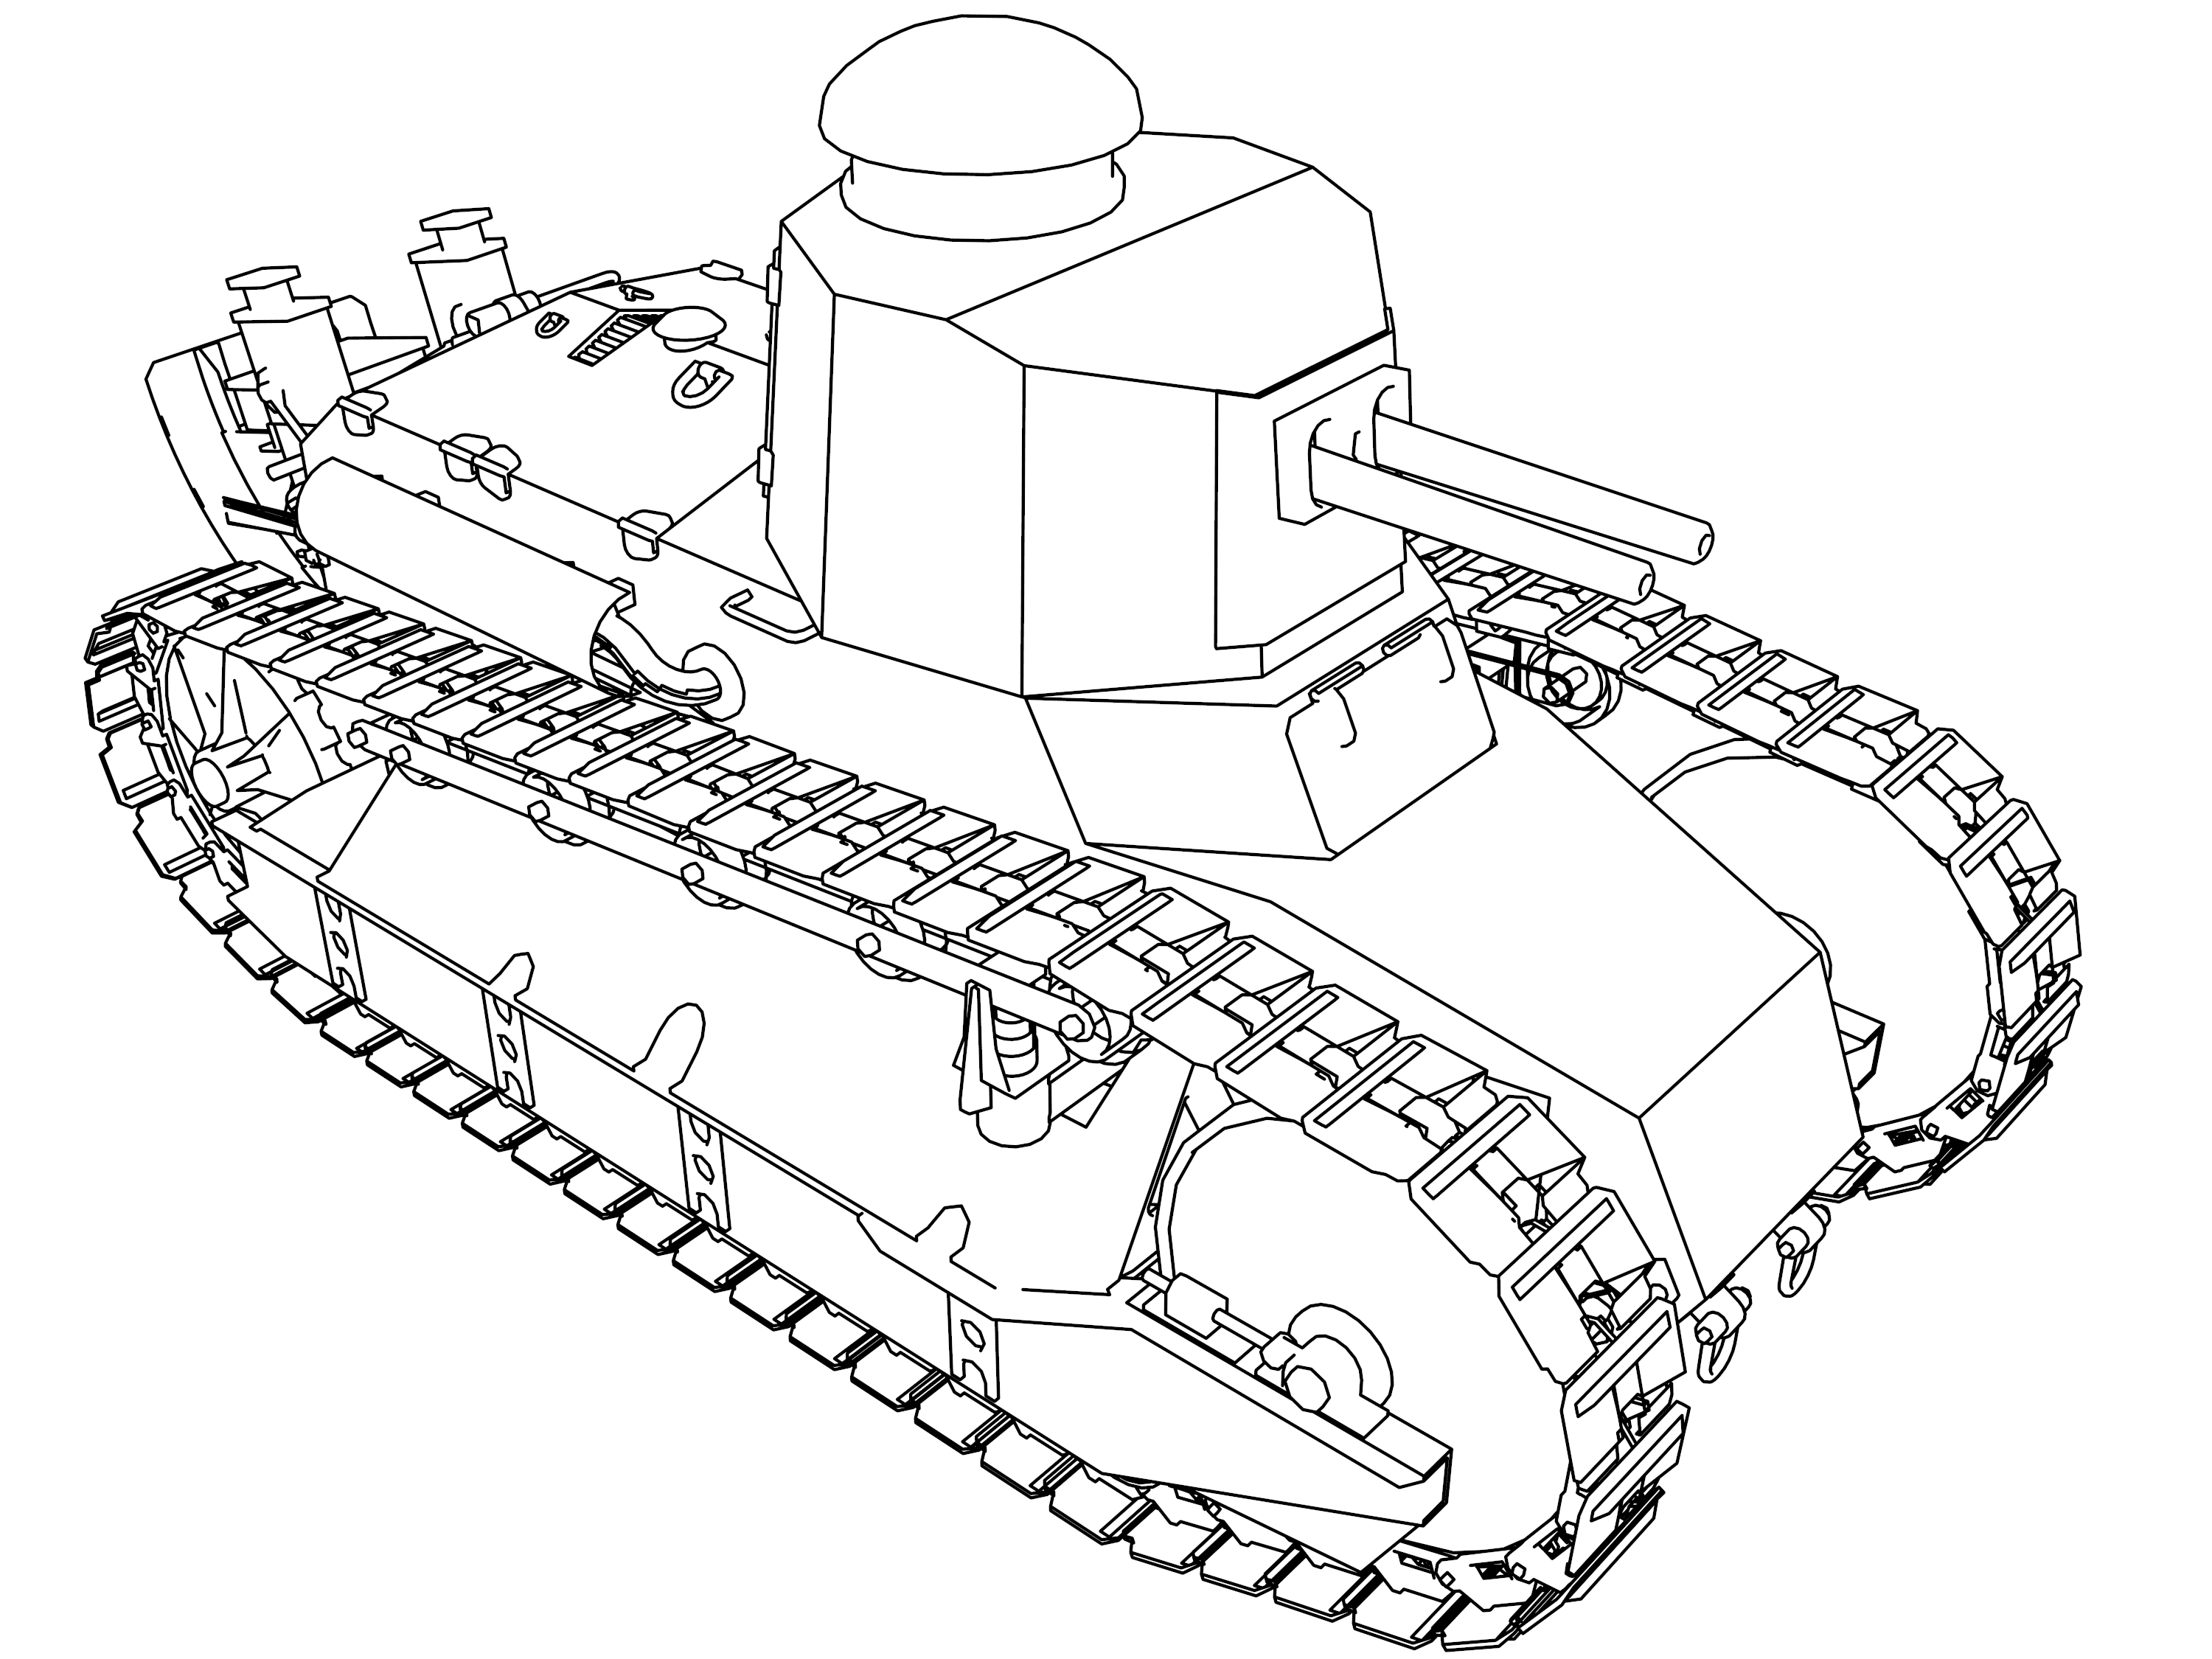 Renault Tank Military Vehicle Coloring Page